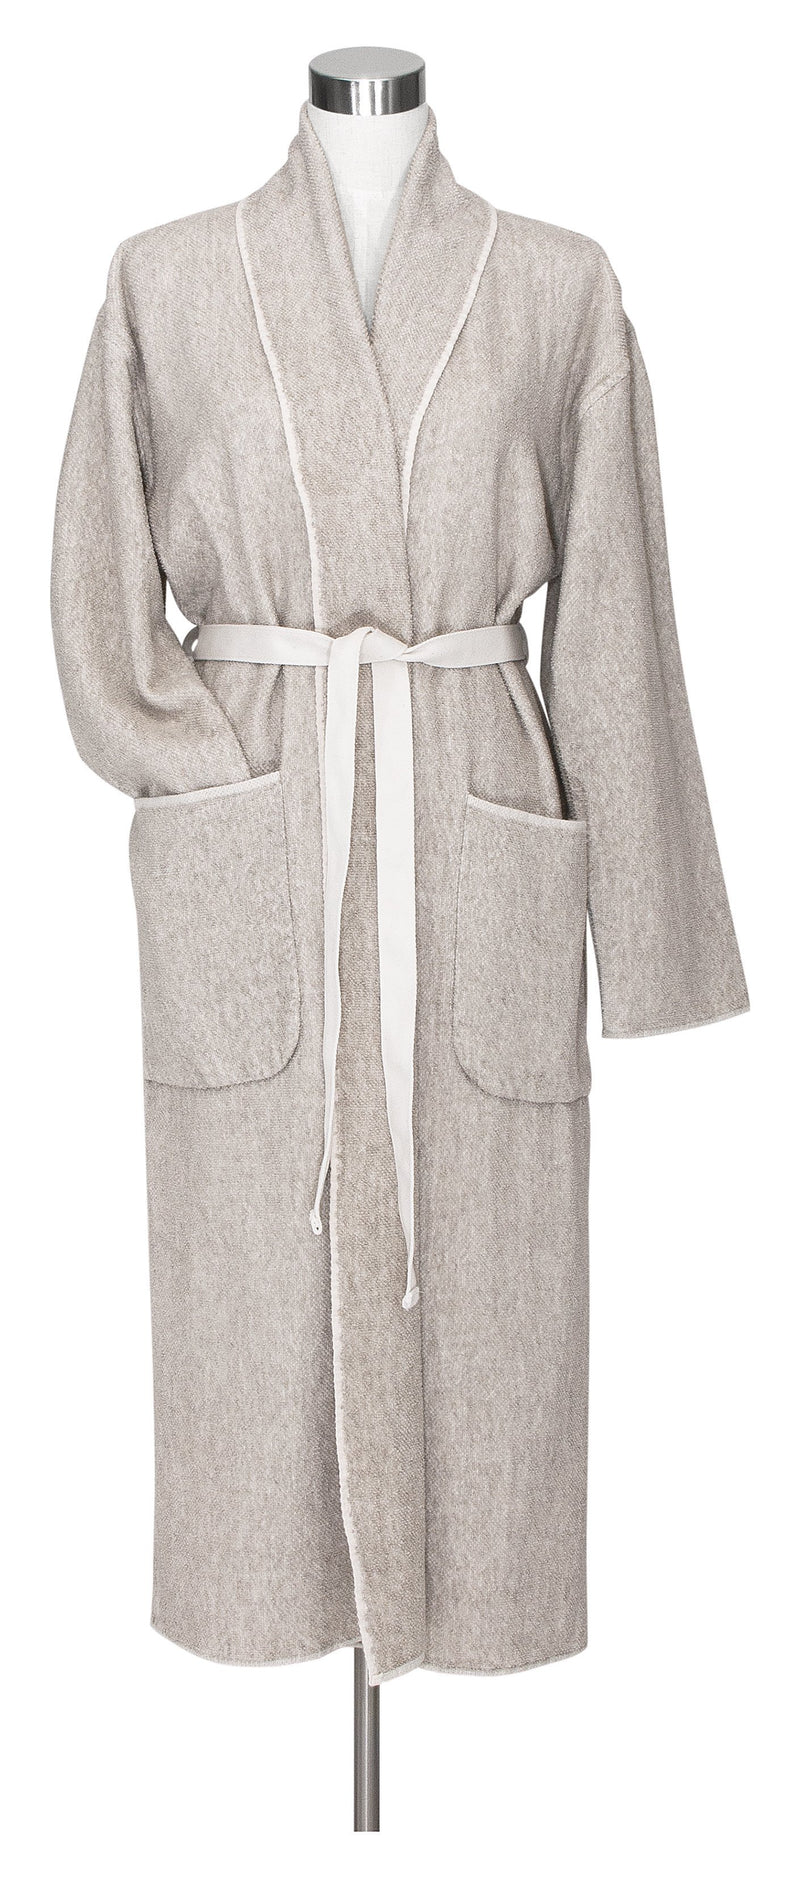 Lapuan Kankurit Bathrobe S Kivi Bathrobe | White Washed Linen